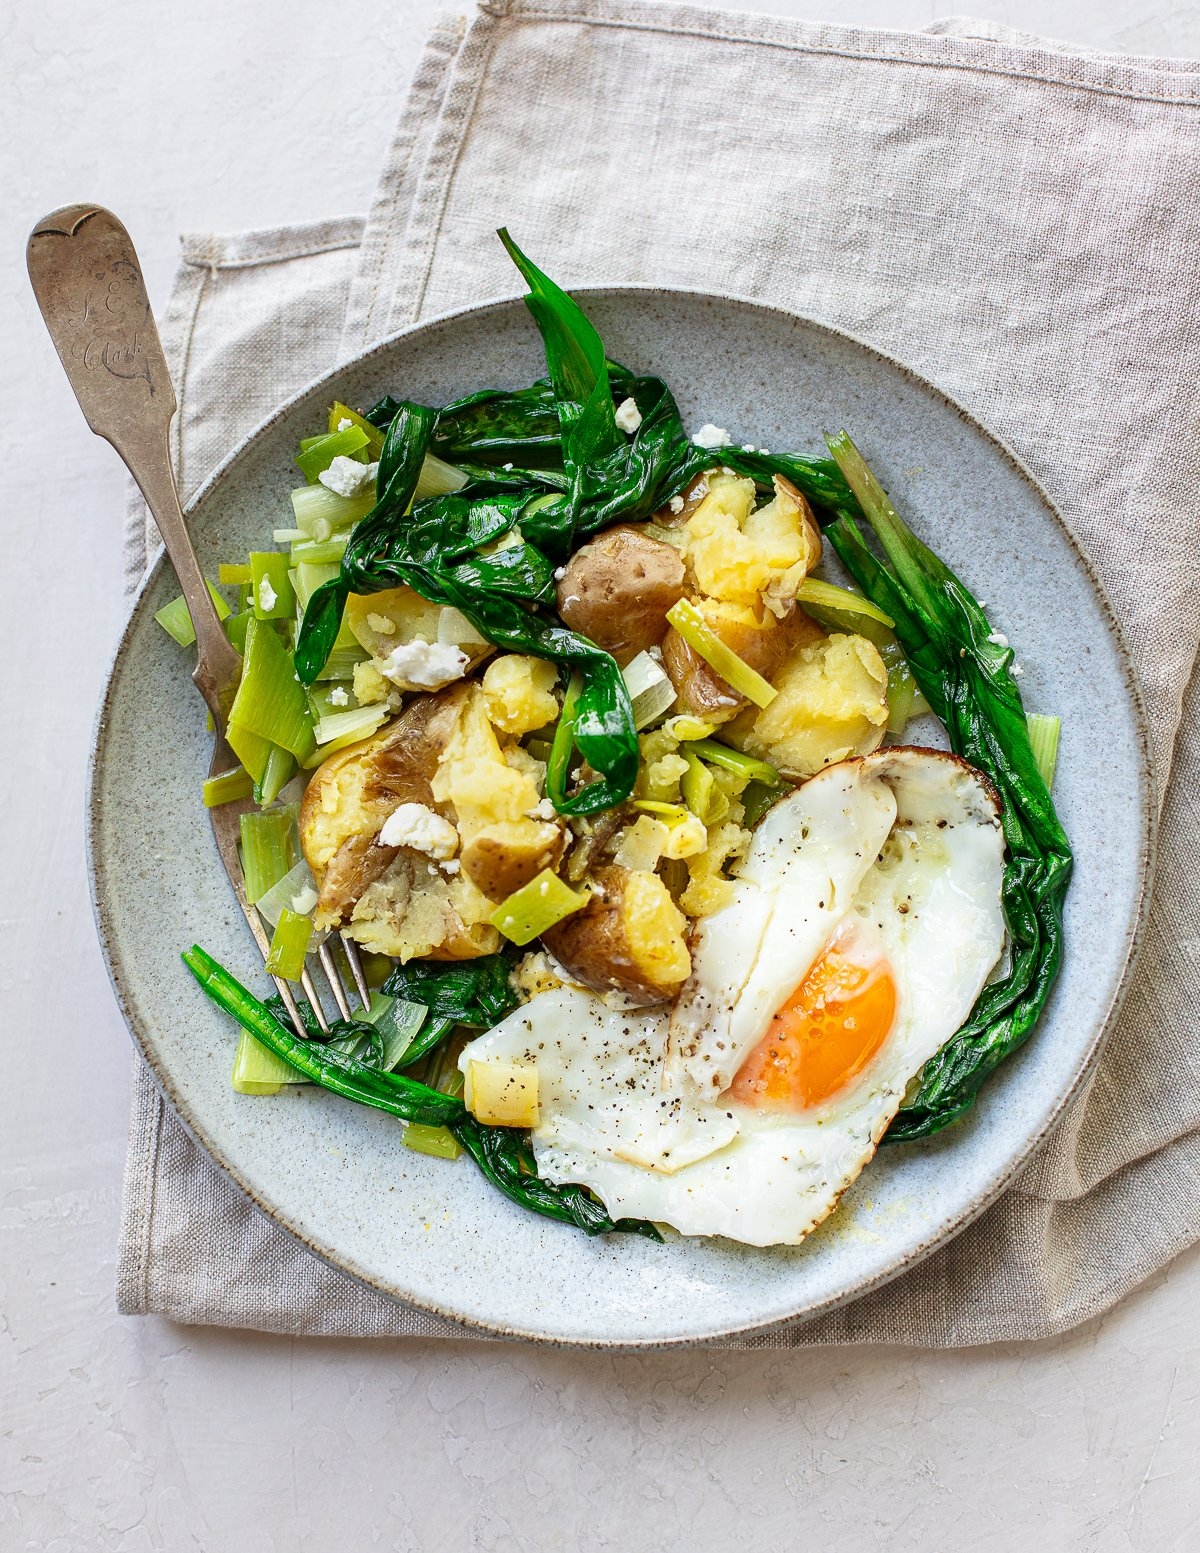 Ramp Leaves with Potatoes and Fried Egg